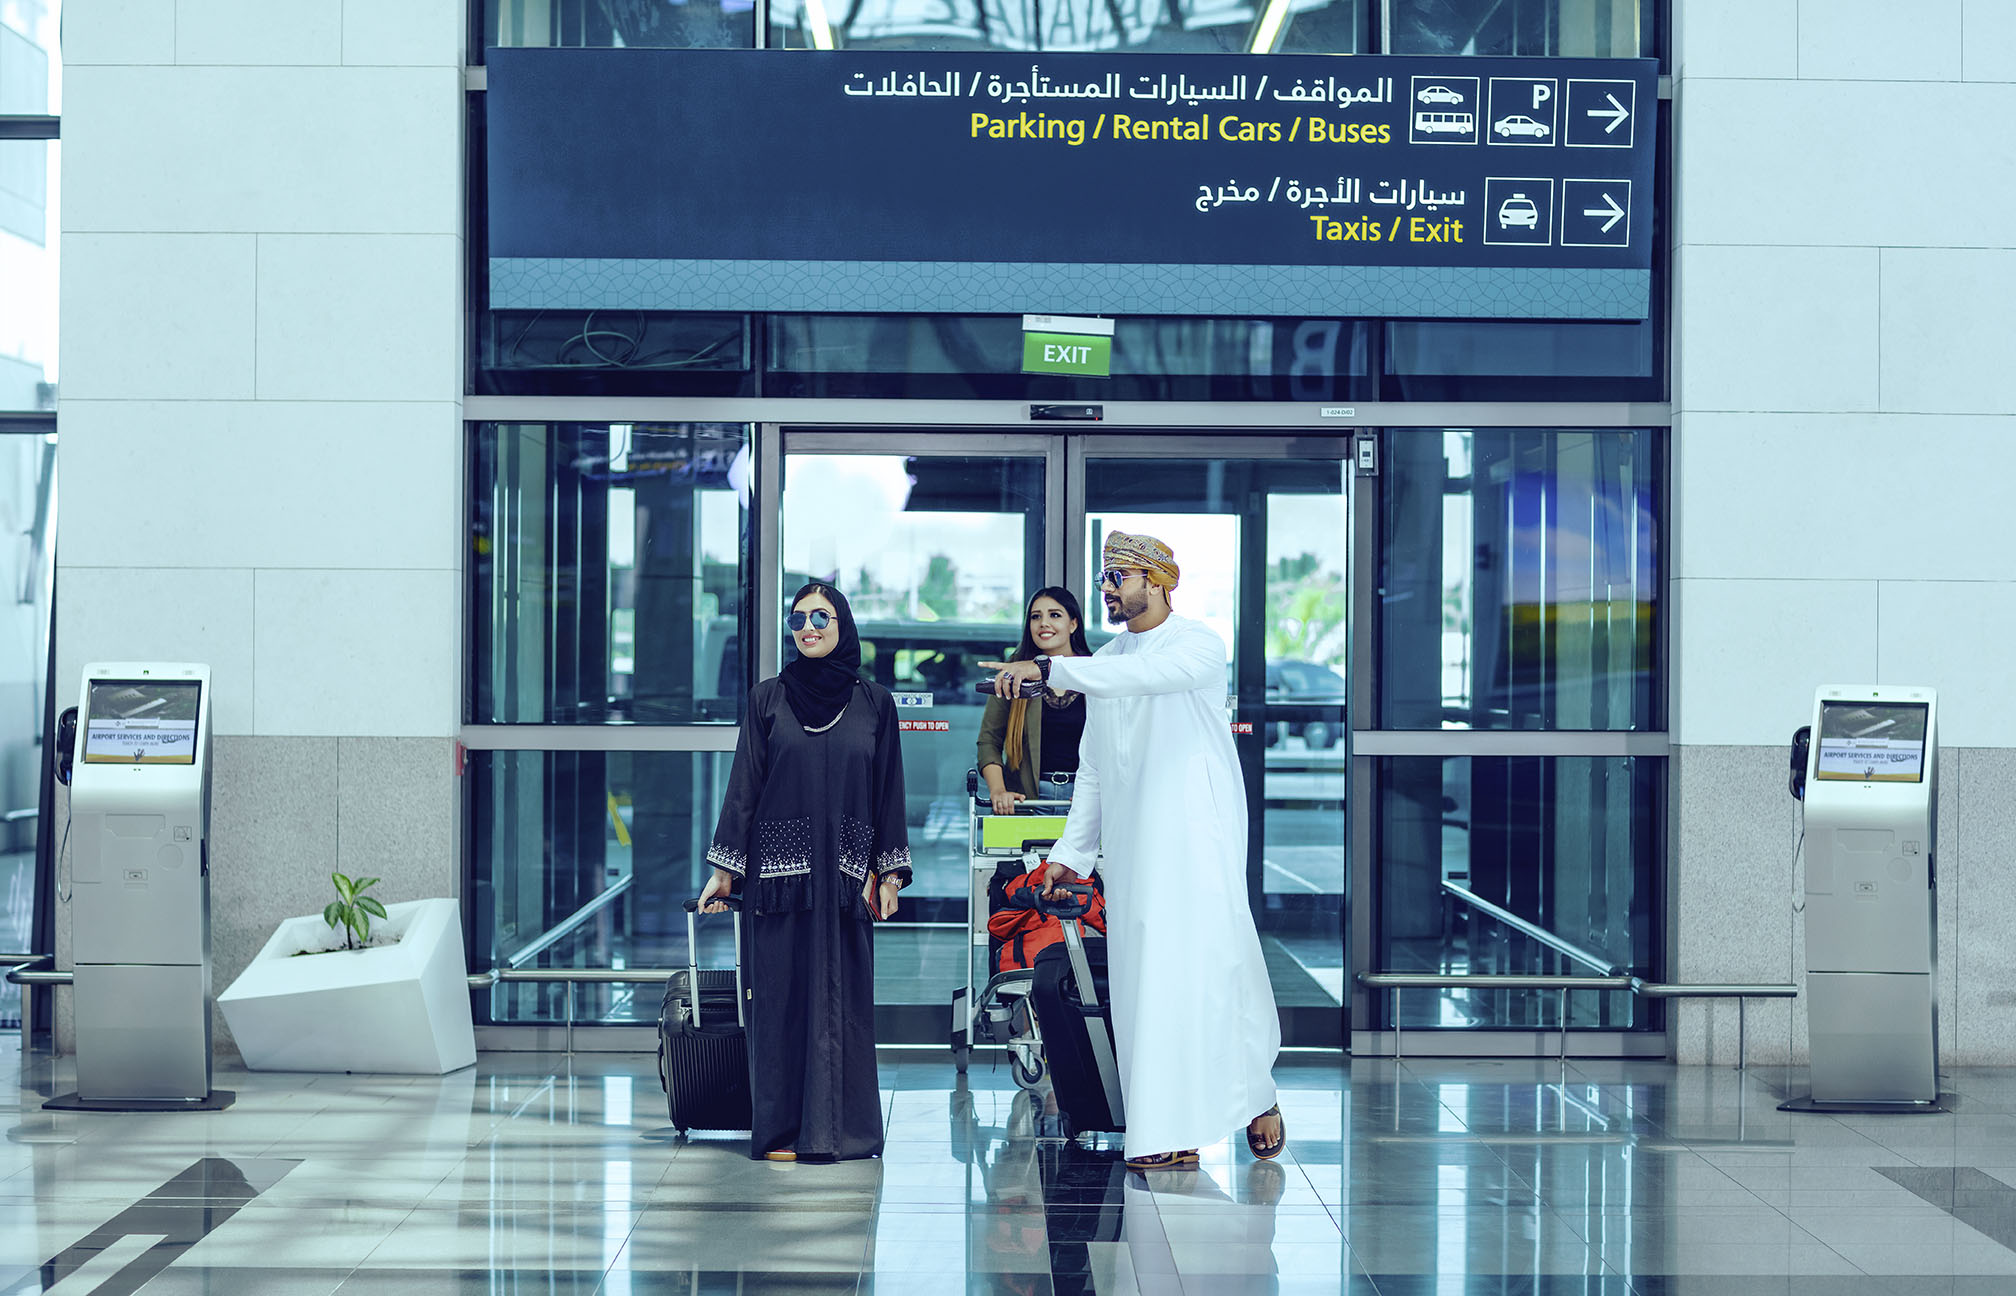 Salalah Airport is expecting 4,000 travelers daily during khareef tourist season.